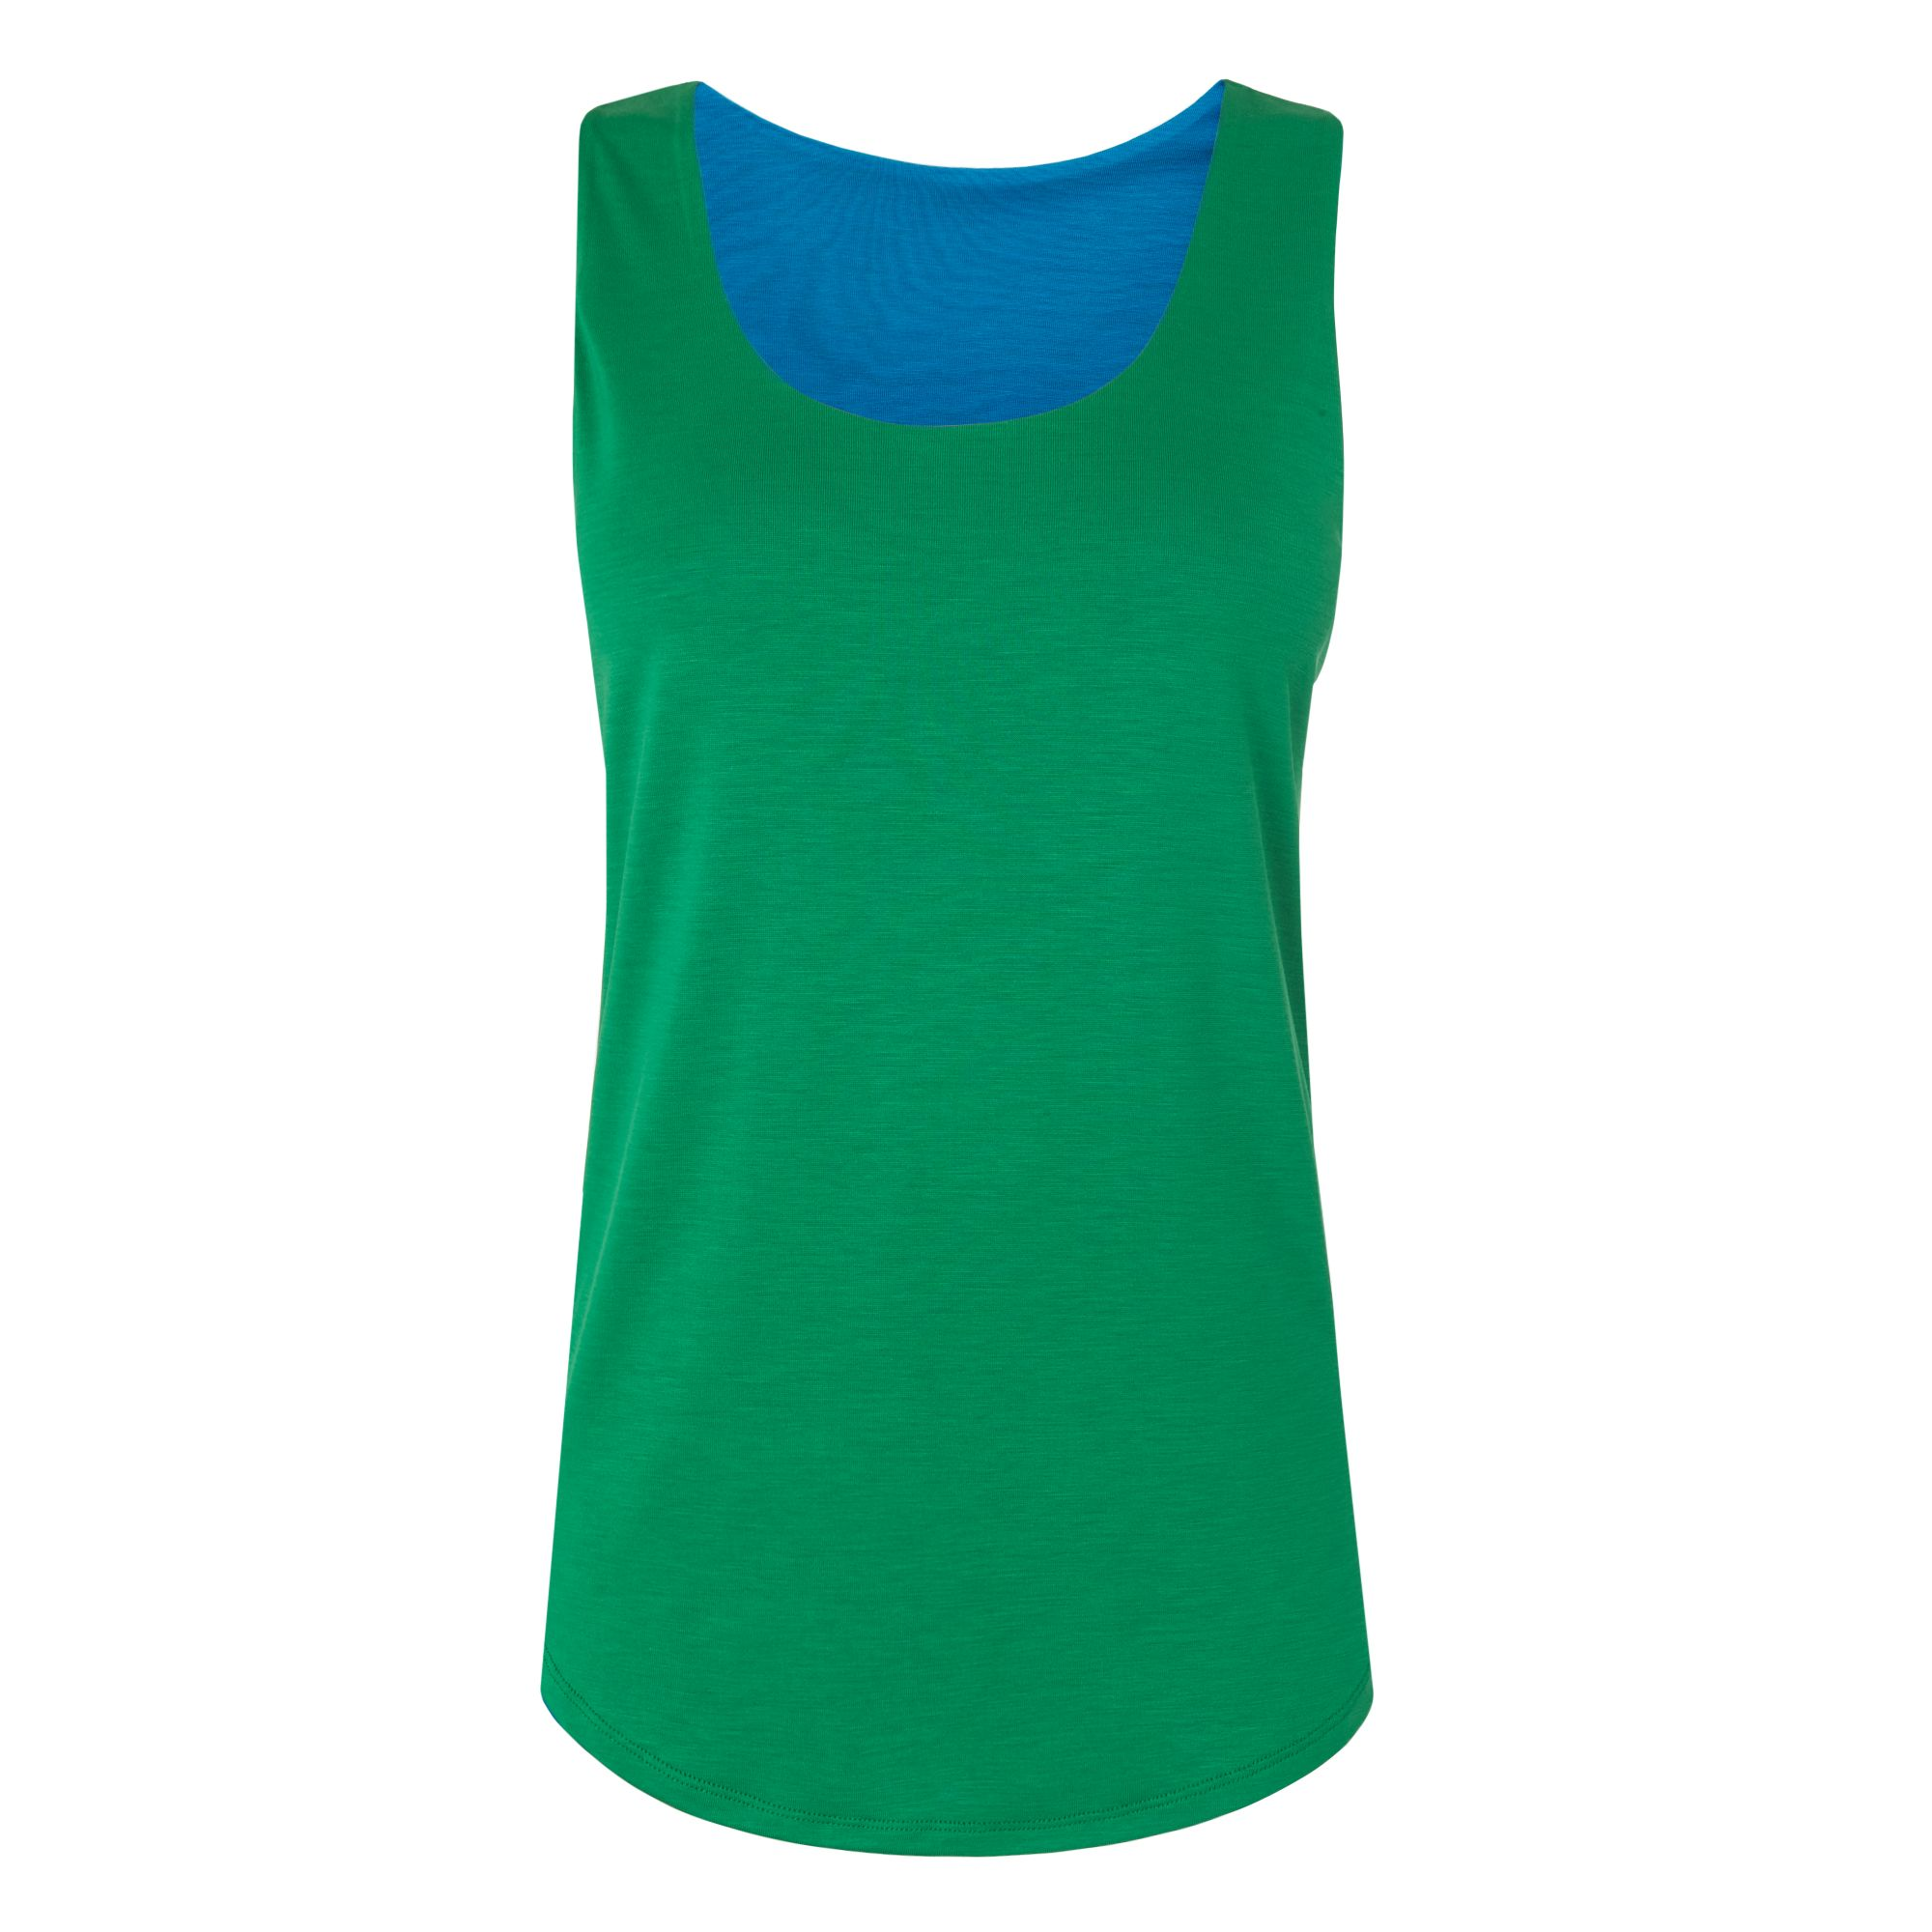 L.K. Bennett Teal Reversible Vest, Green